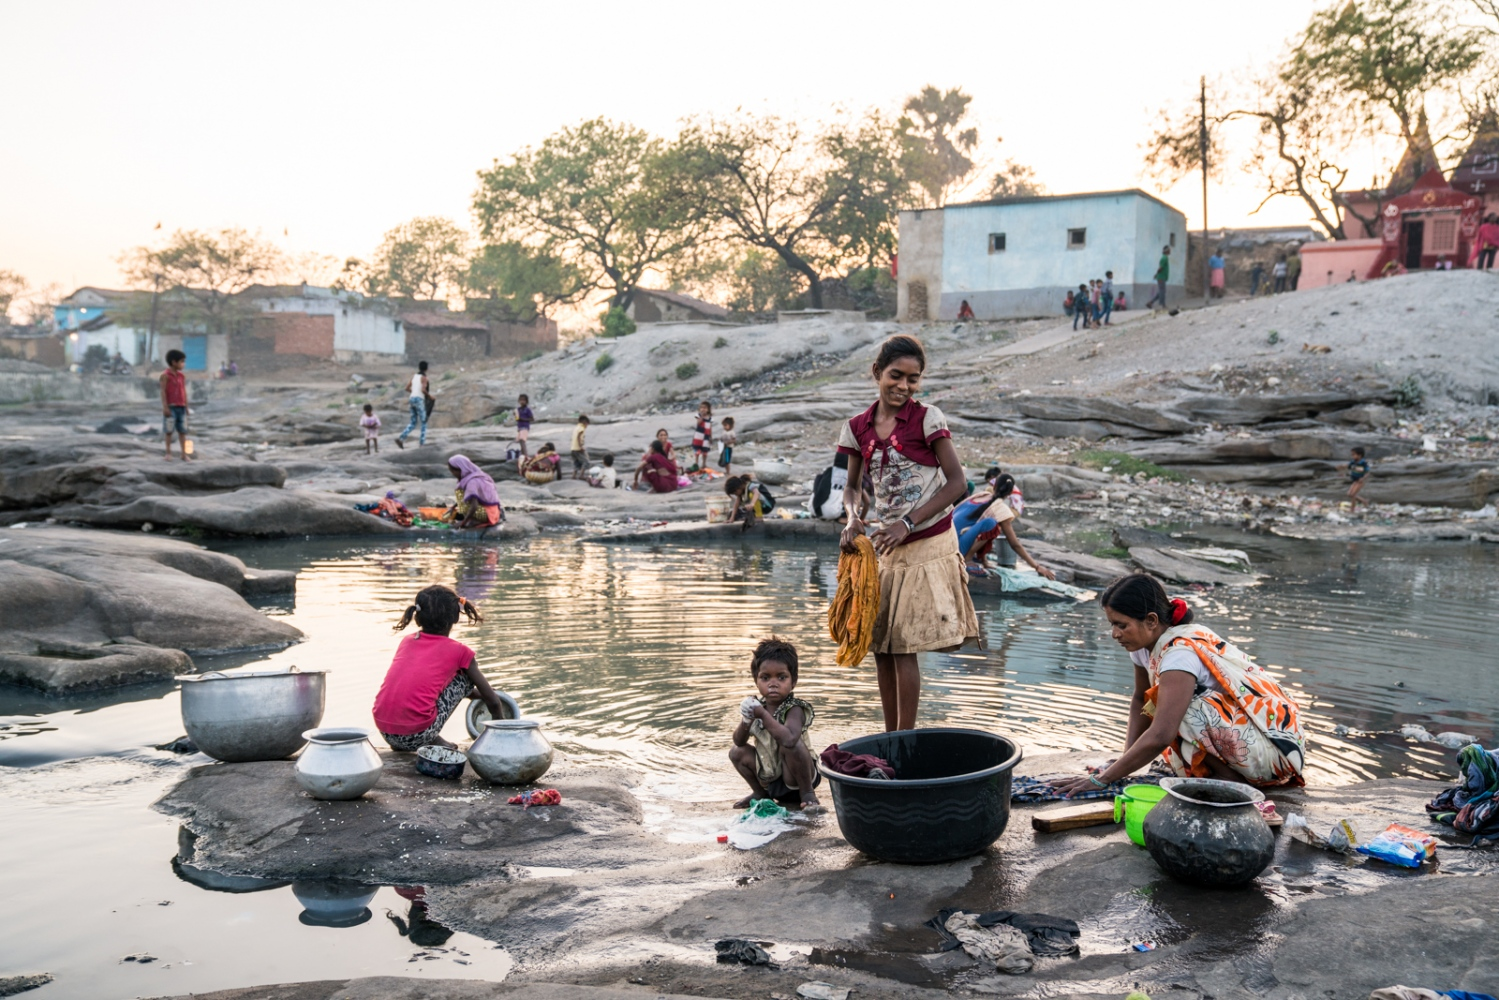 Women and children of Jharia wash dishes and clothing in the river that is polluted with mine tailing and sewage.